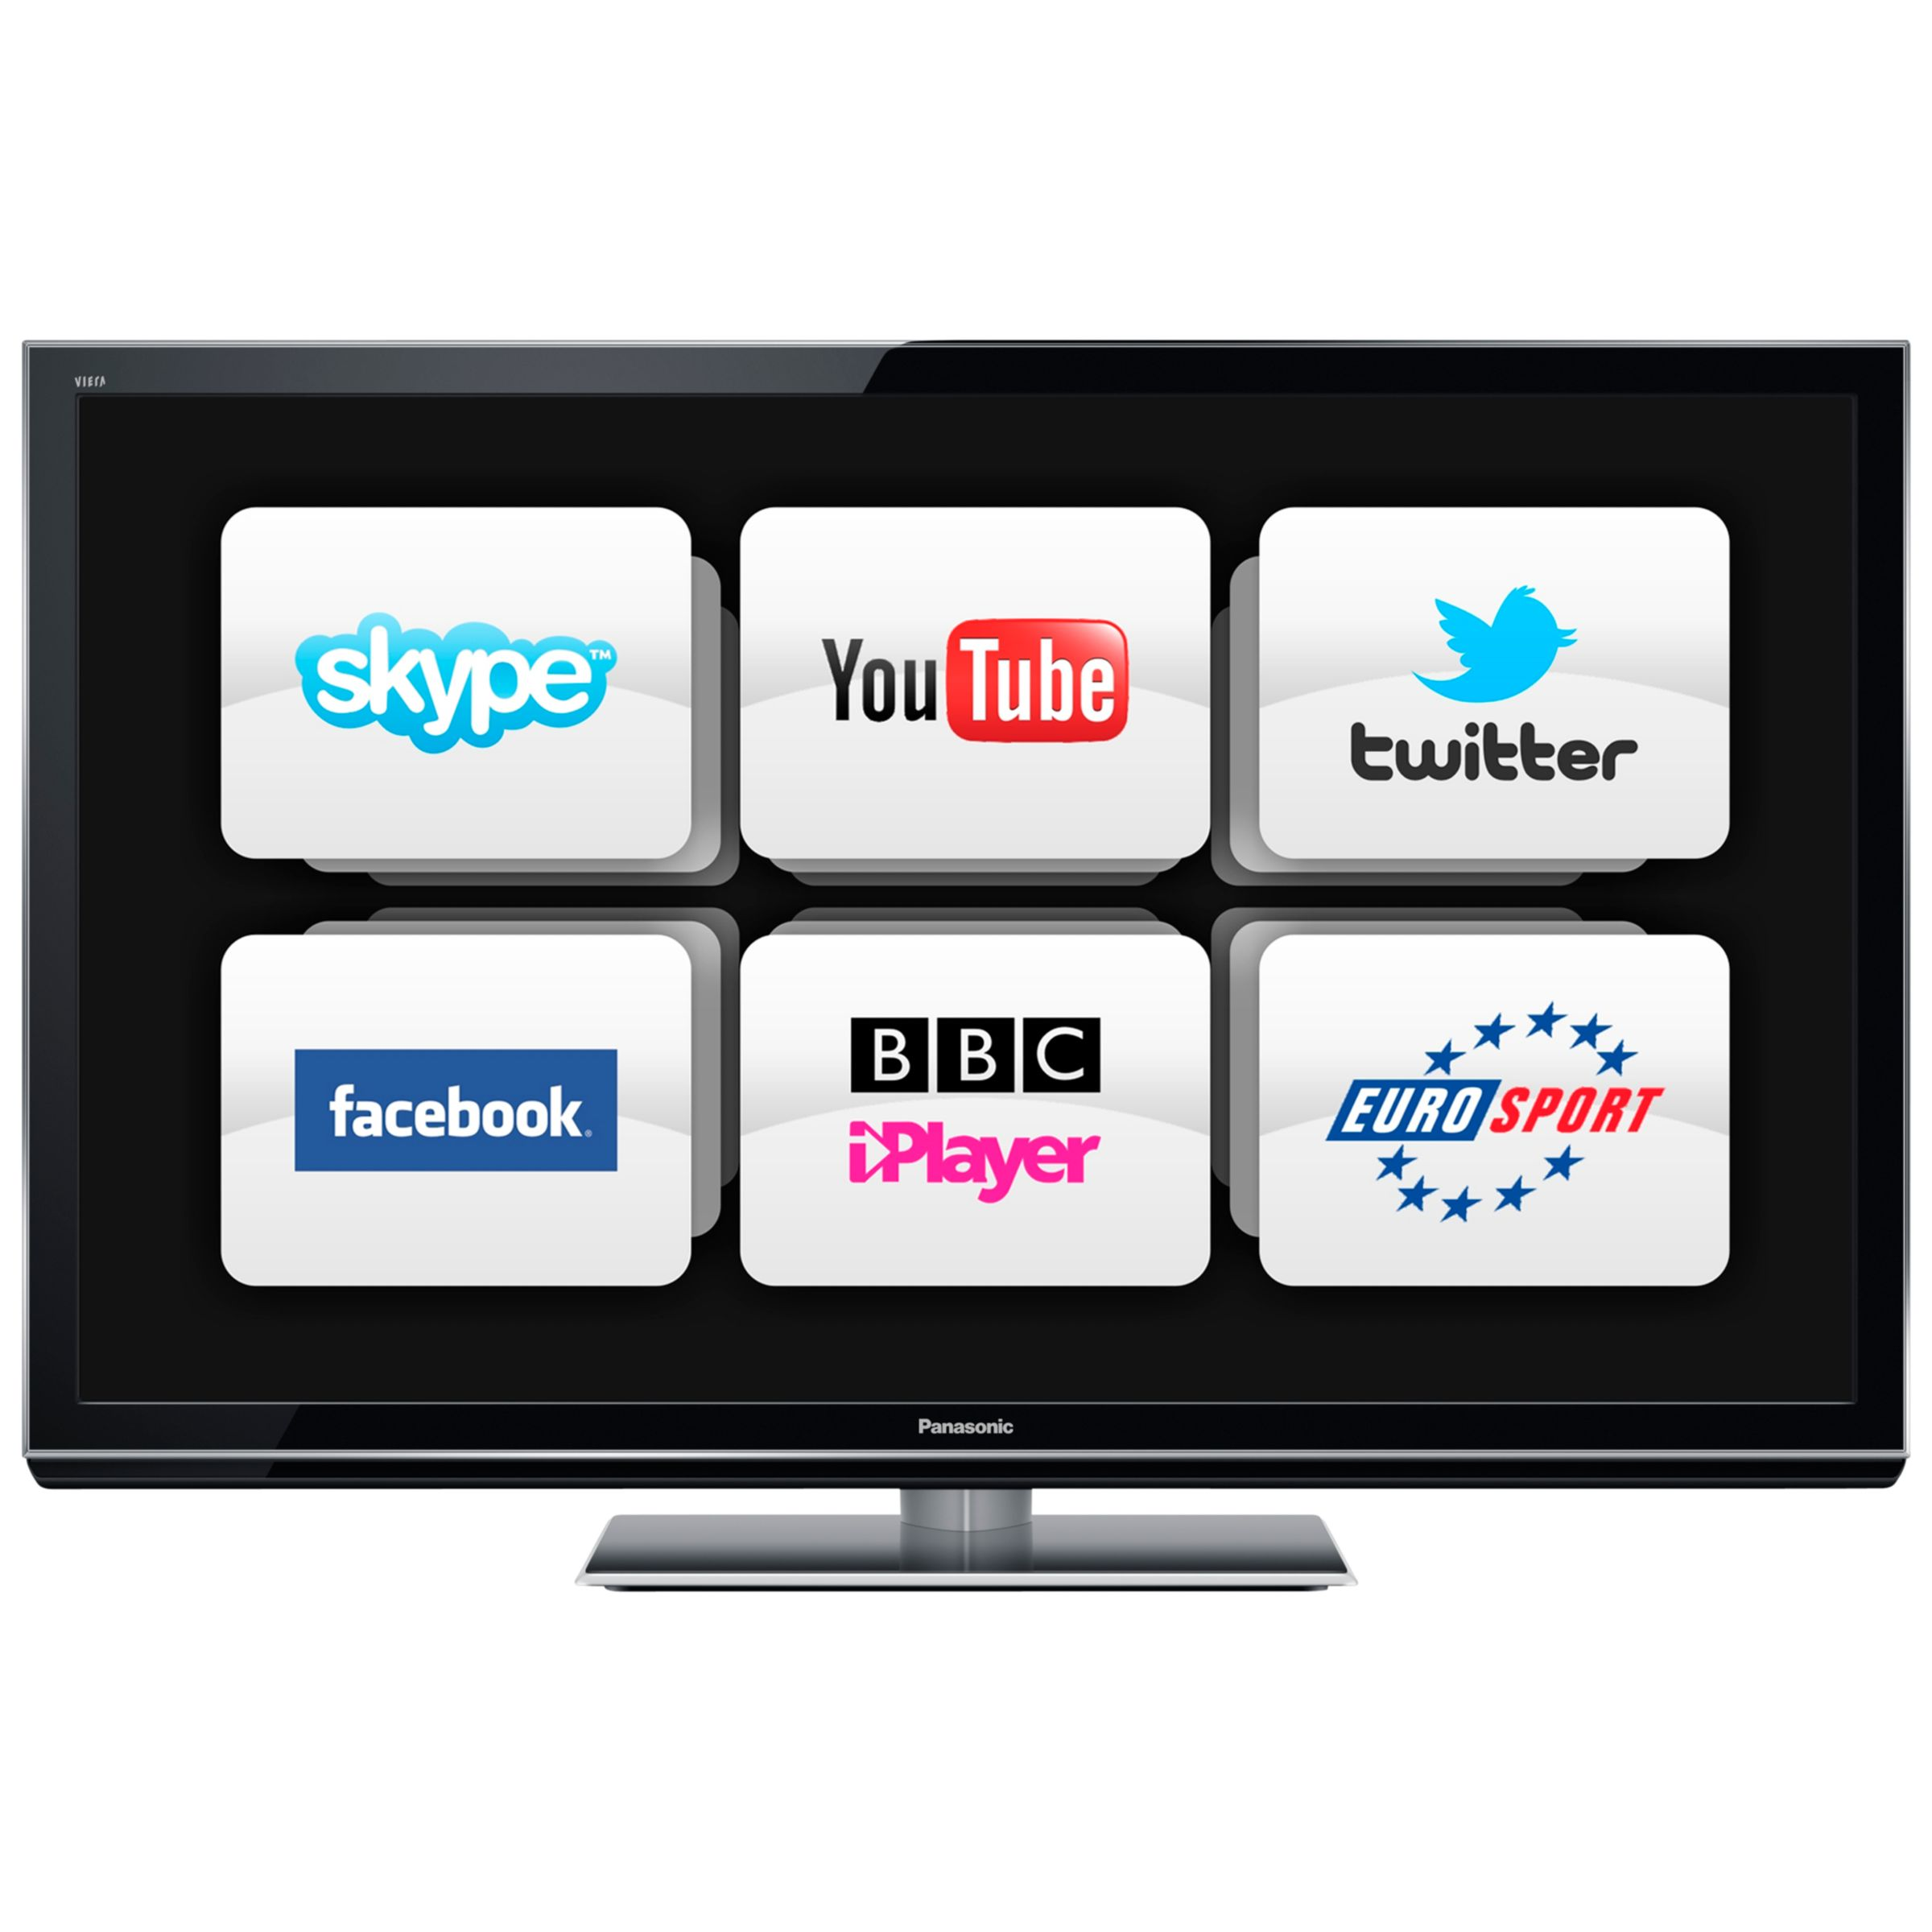 Panasonic Viera TX-P42GT50B Plasma HD 1080p 3D Smart TV, 42 Inch with Freesat/Freeview HD